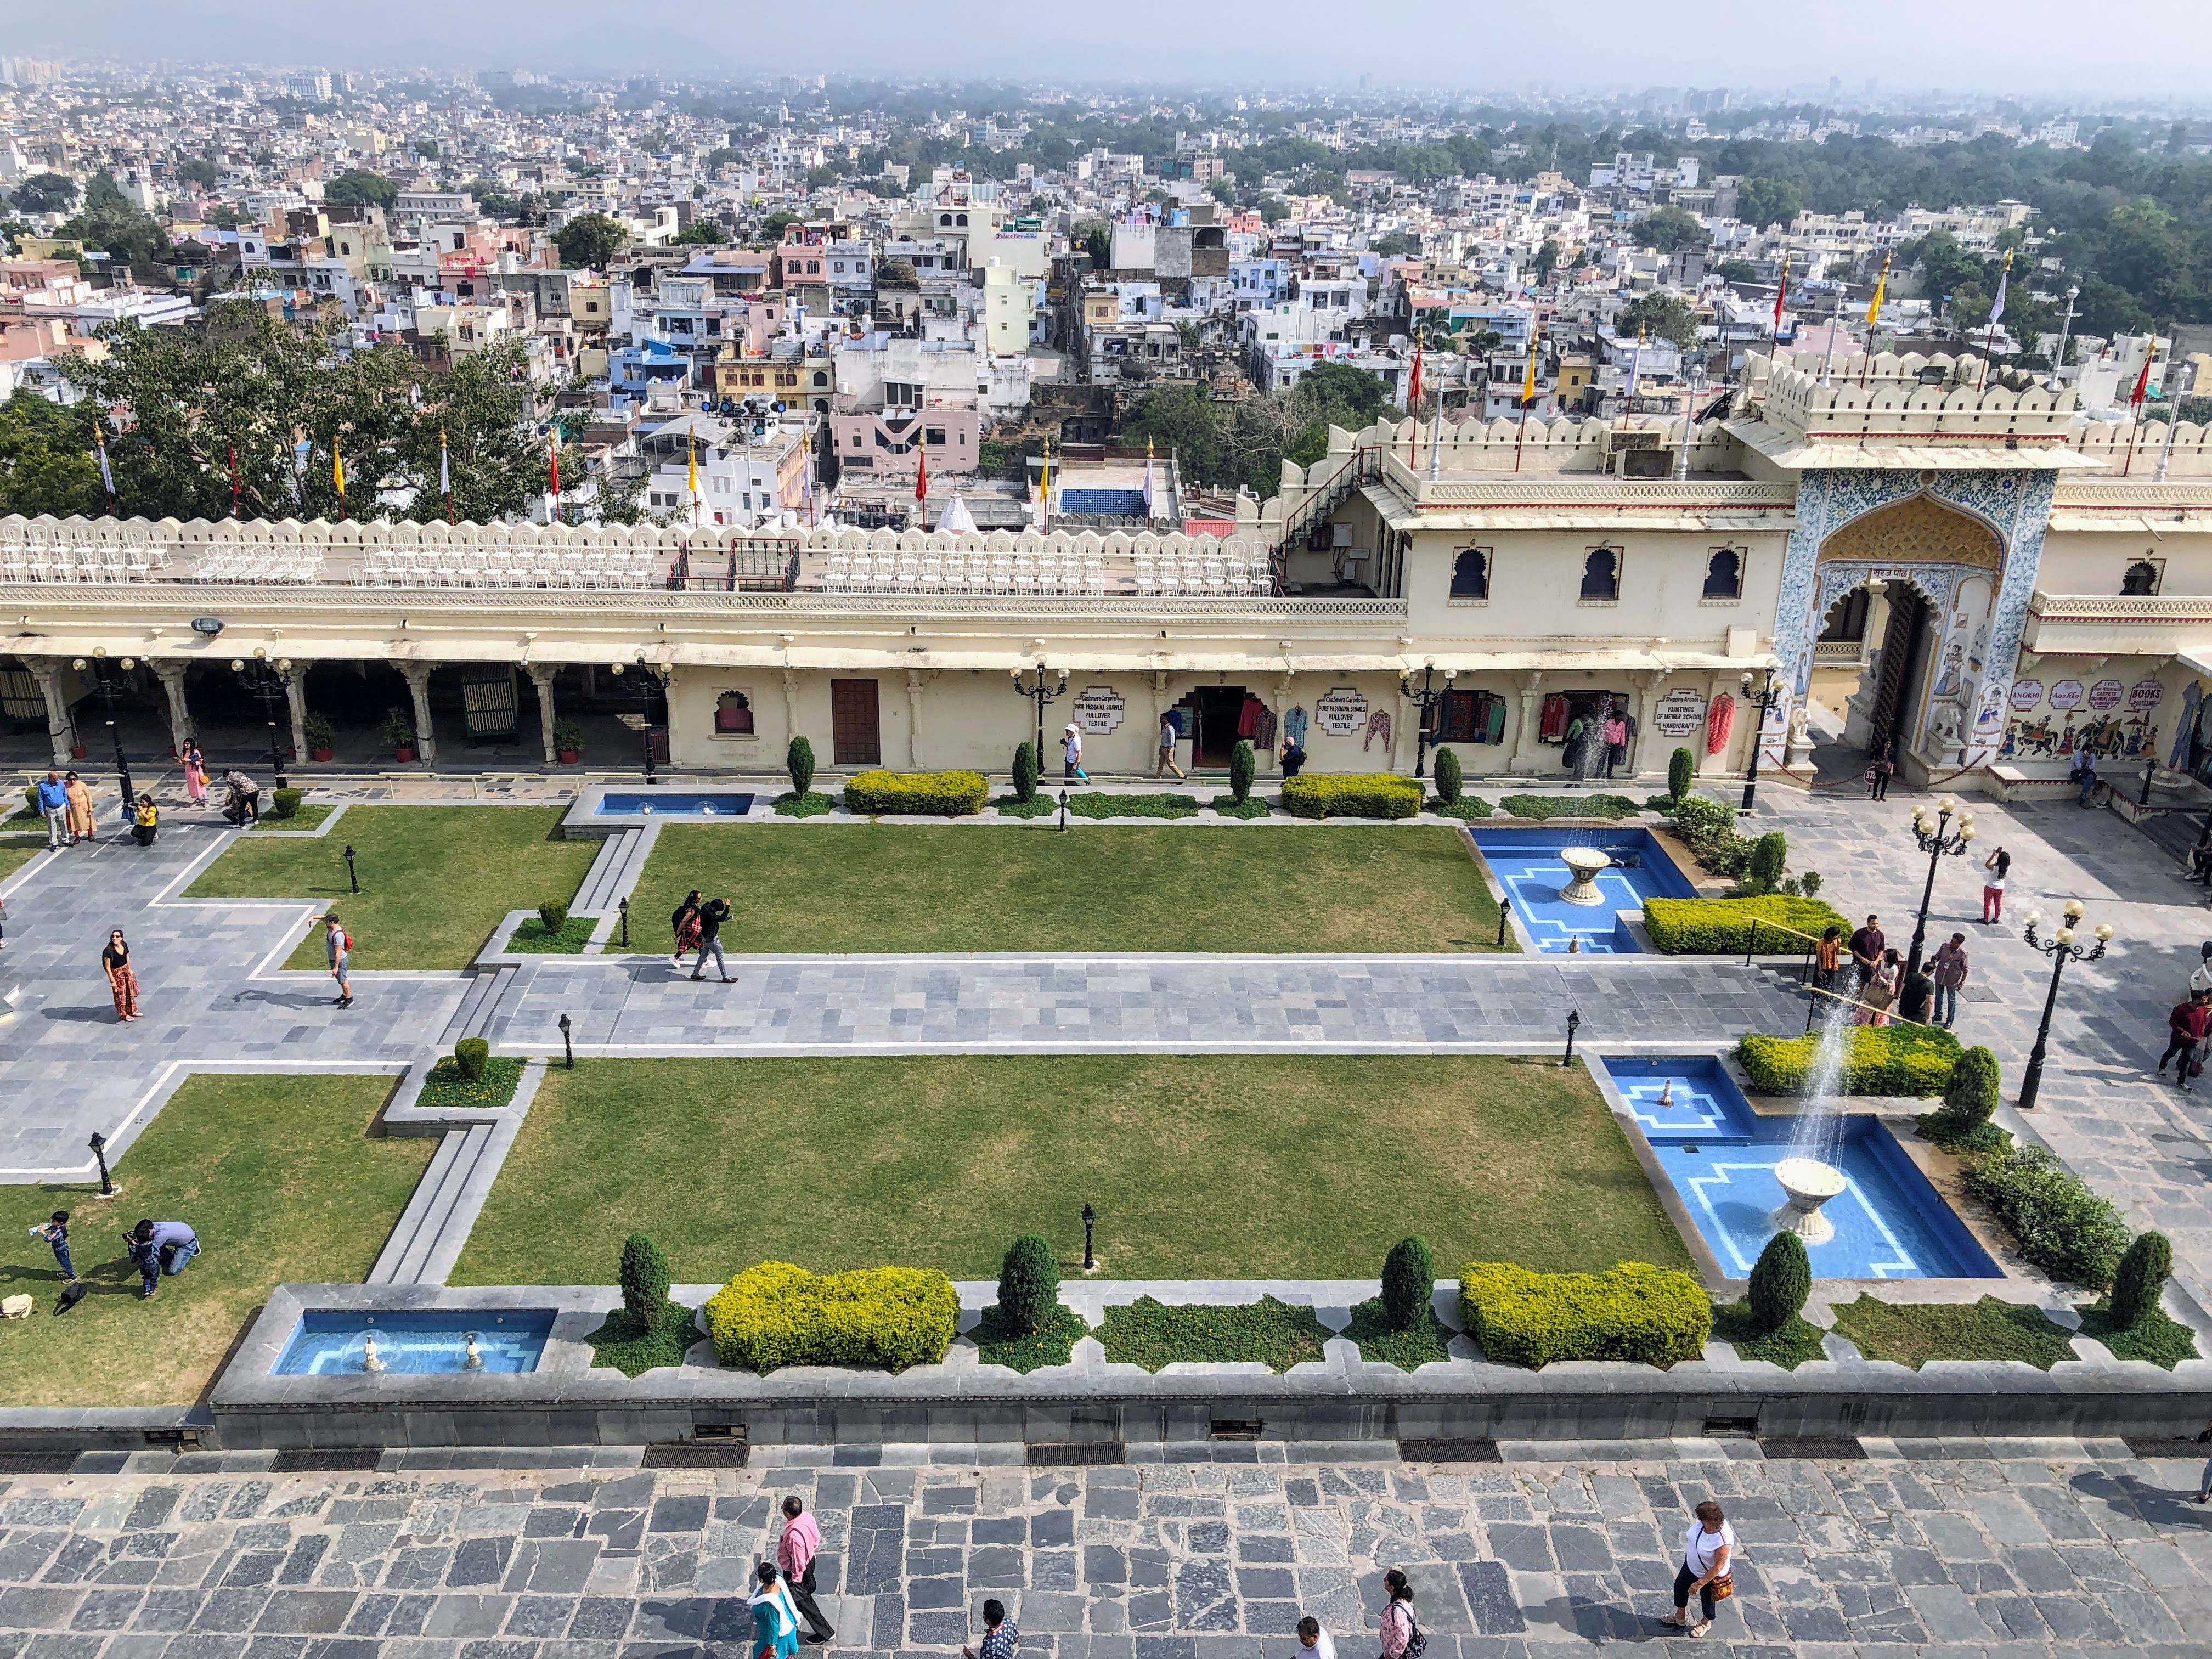 view over udaipur from the city palace, showing the gardens by the entrance and the city in the background